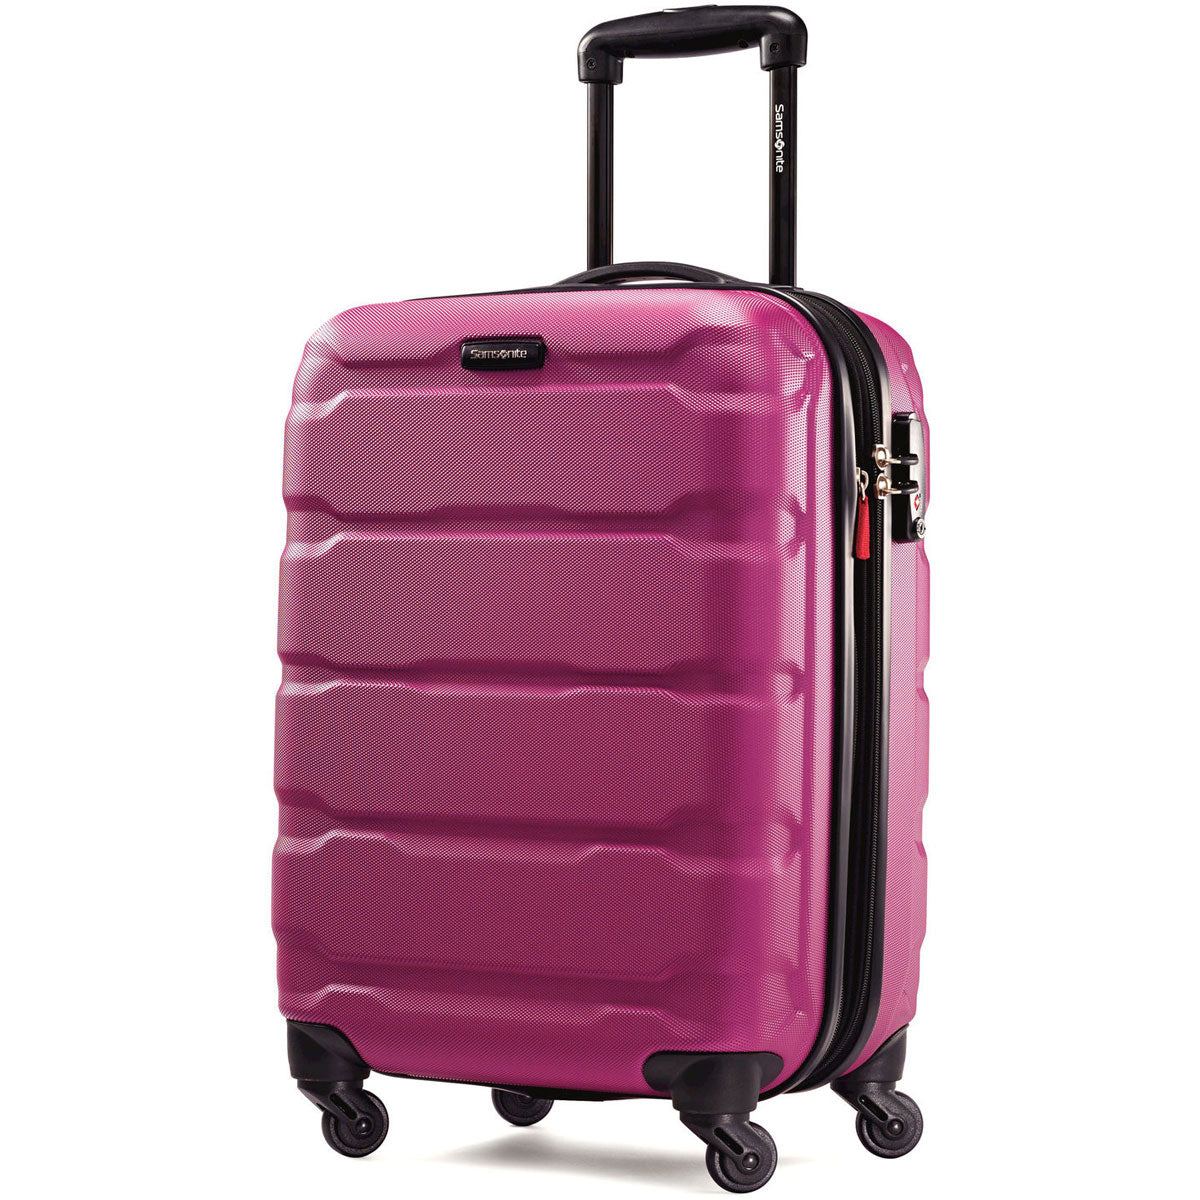 Samsonite Omni PC 20in Spinner Carry On